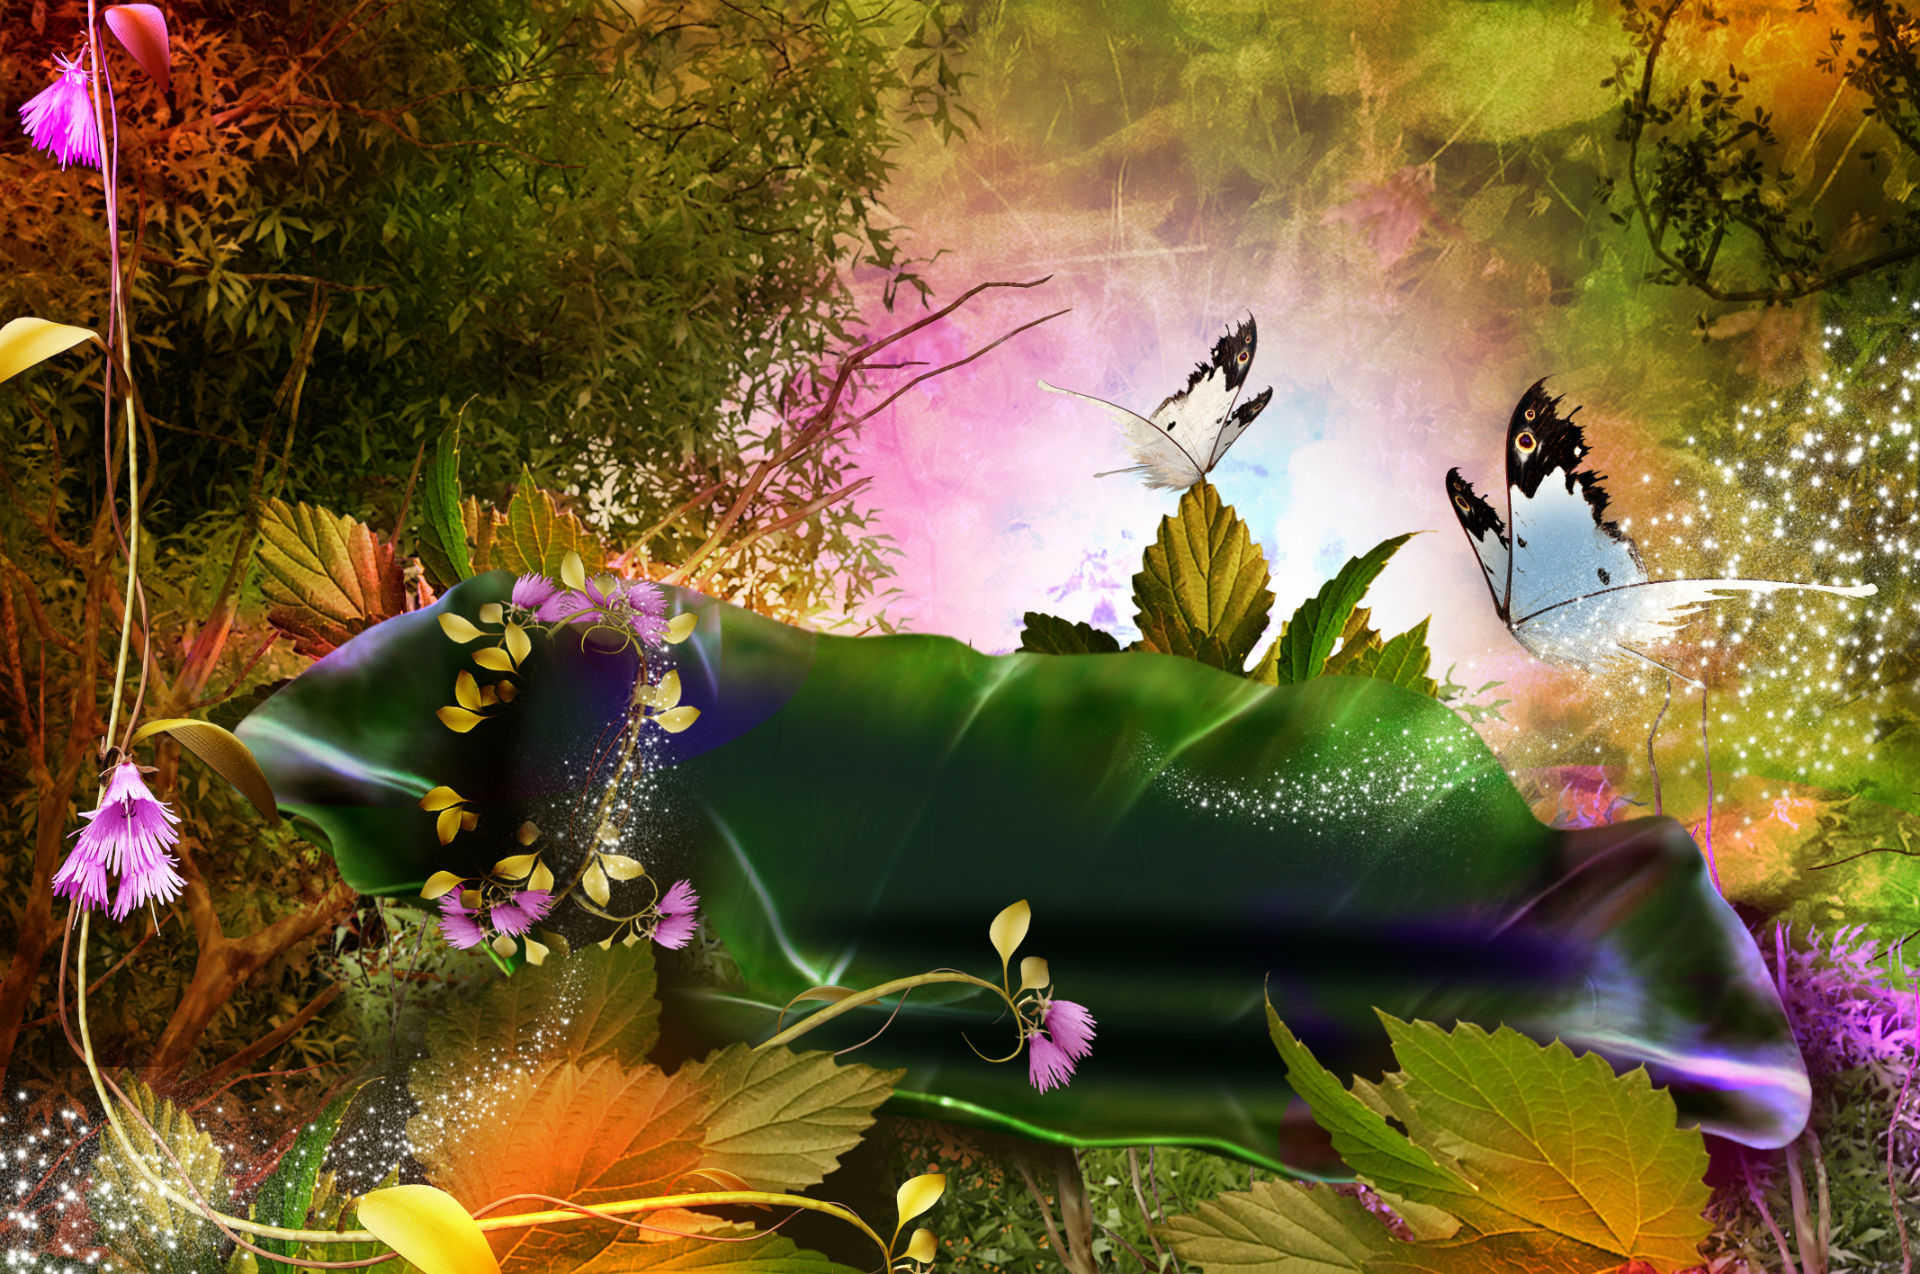 Fall Season Live Wallpaper For Android 3d Nature Phantasmagoria Butterfly Leaves Forest Magic